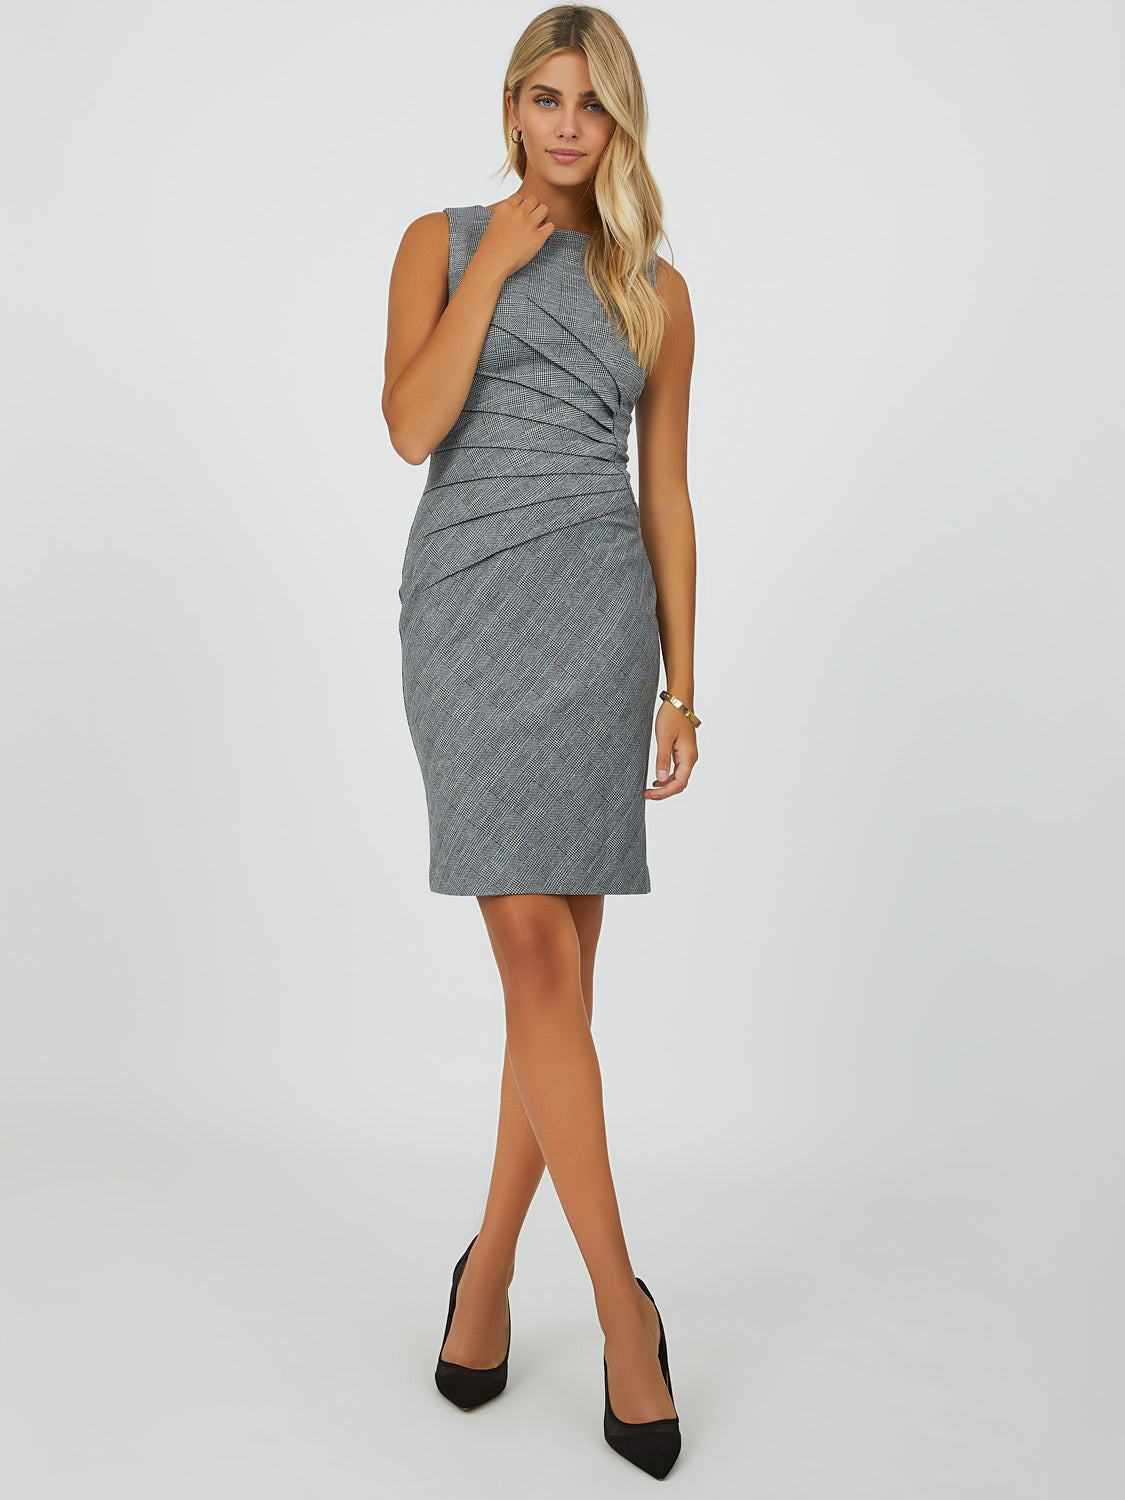 Sleeveless Glen Plaid Sheath Mini Dress